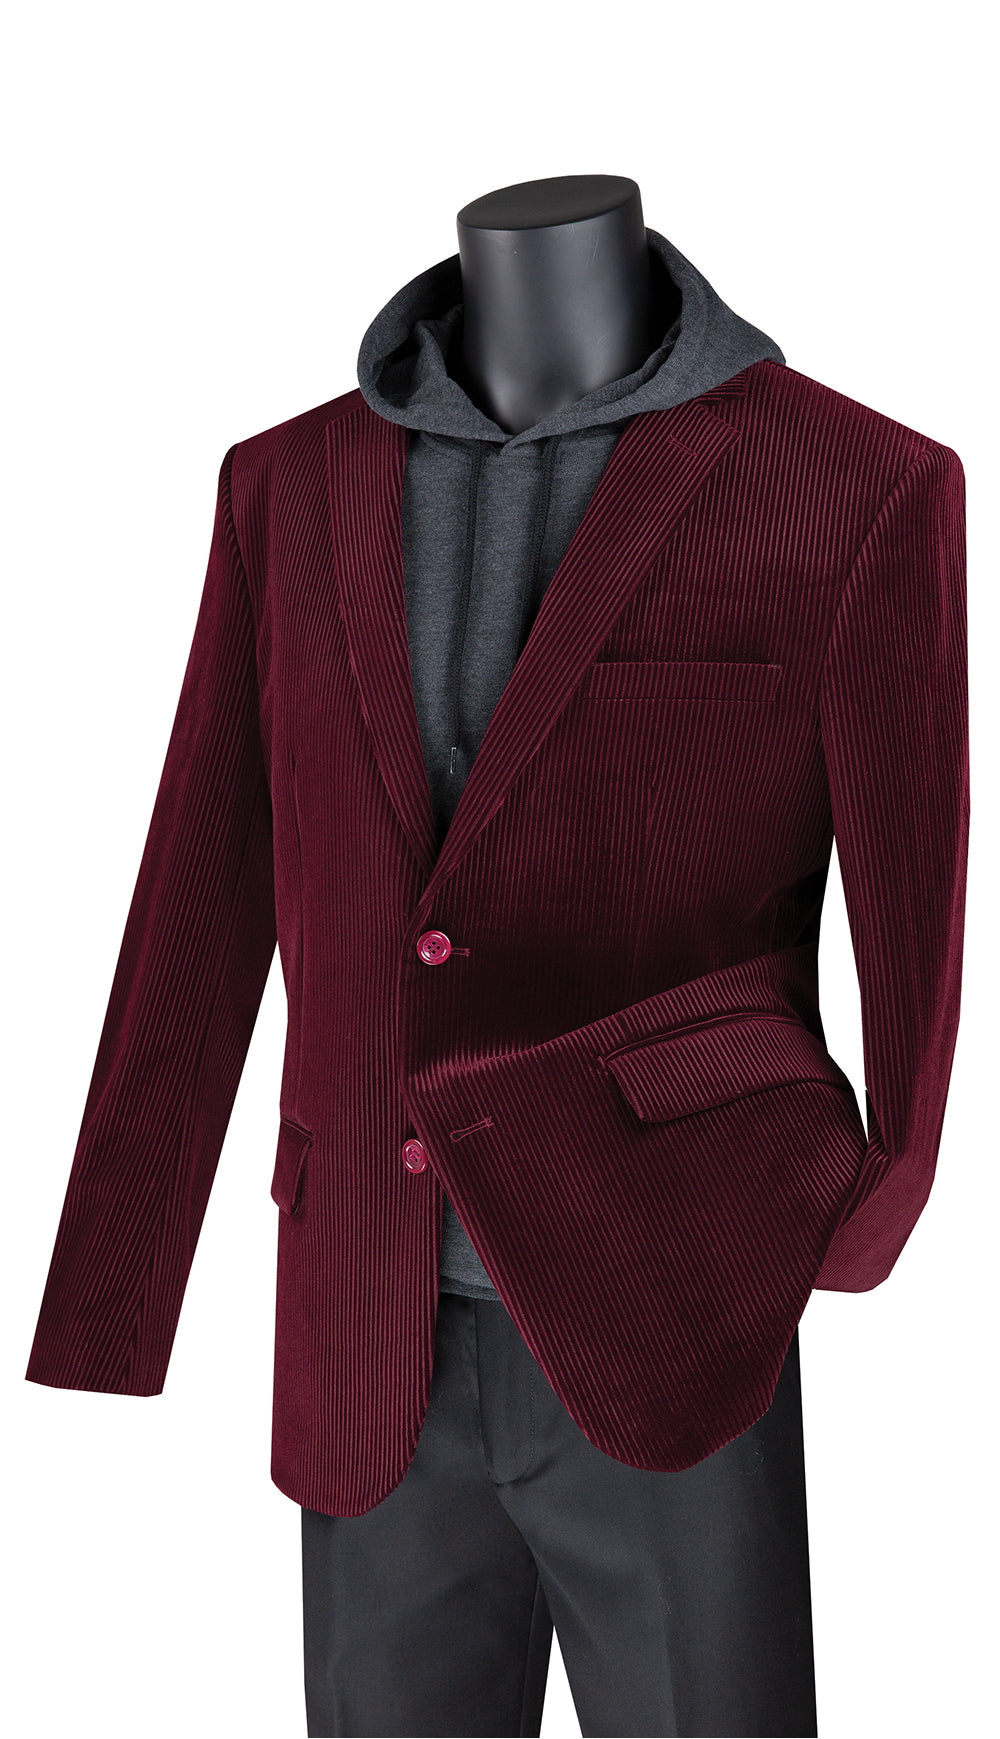 Vinci Sport Coat BCORD-1-Burgundy - Church Suits For Less